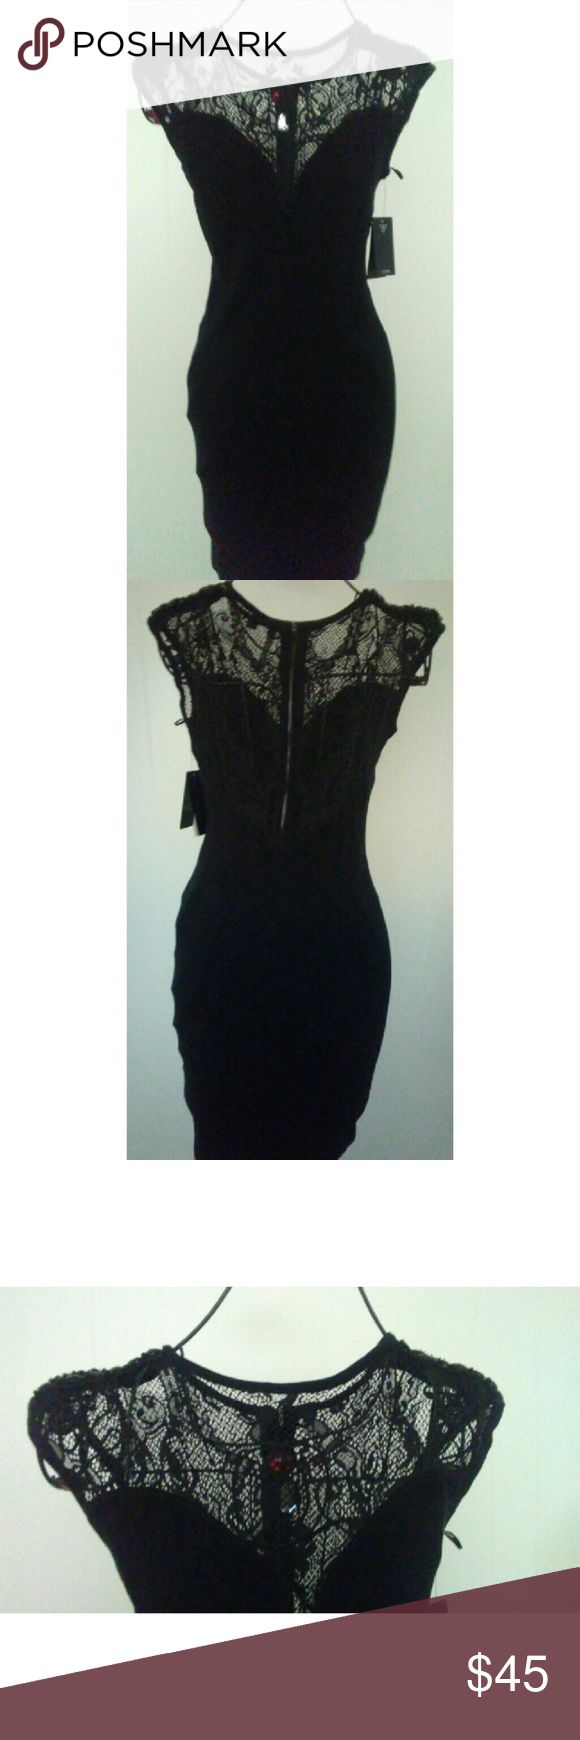 Guess dress nwt Beautiful top stretchy Guess Dresses